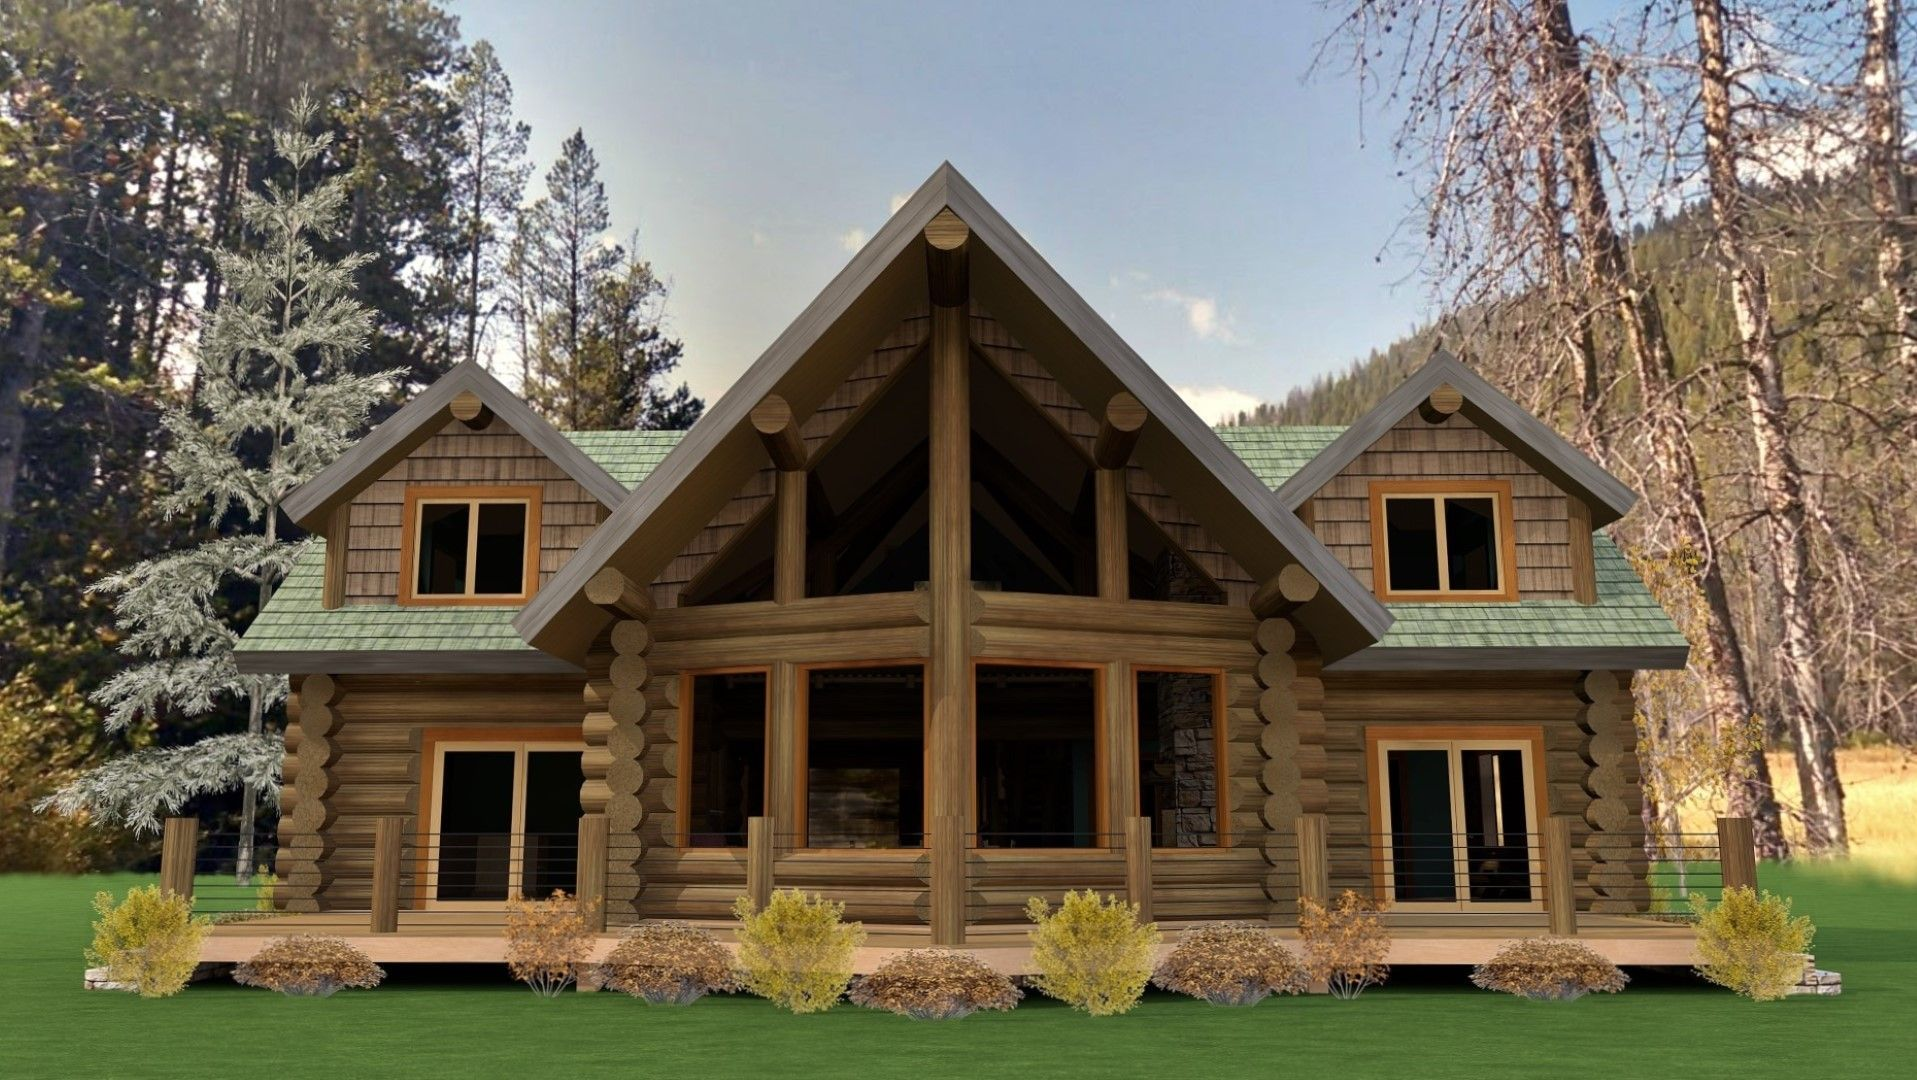 Today S Floorplan The Koocanusa One Of Our Most Popular Designs This Home Features An Open Loft Rustic House Plans Log Home Floor Plans Loft Floor Plans